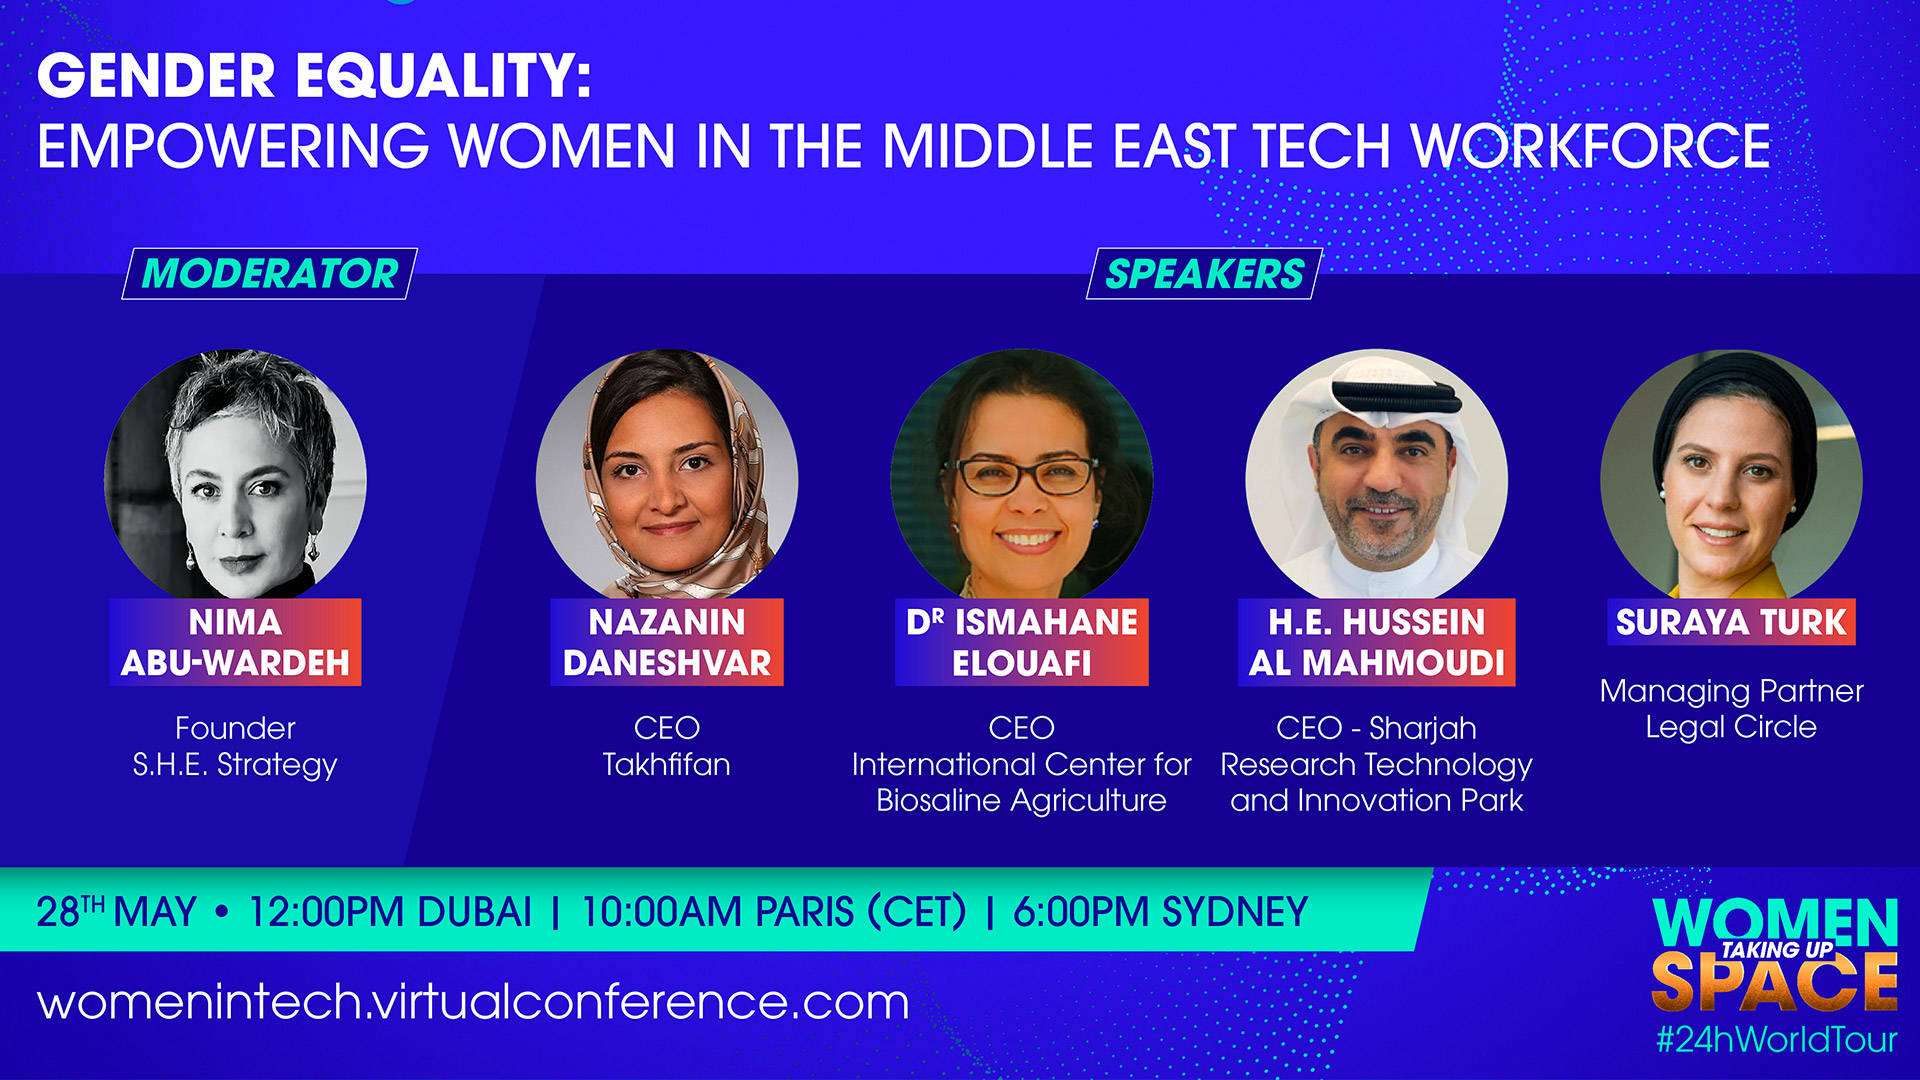 Gender Equality: Empowering women in the Middle East Tech workforce